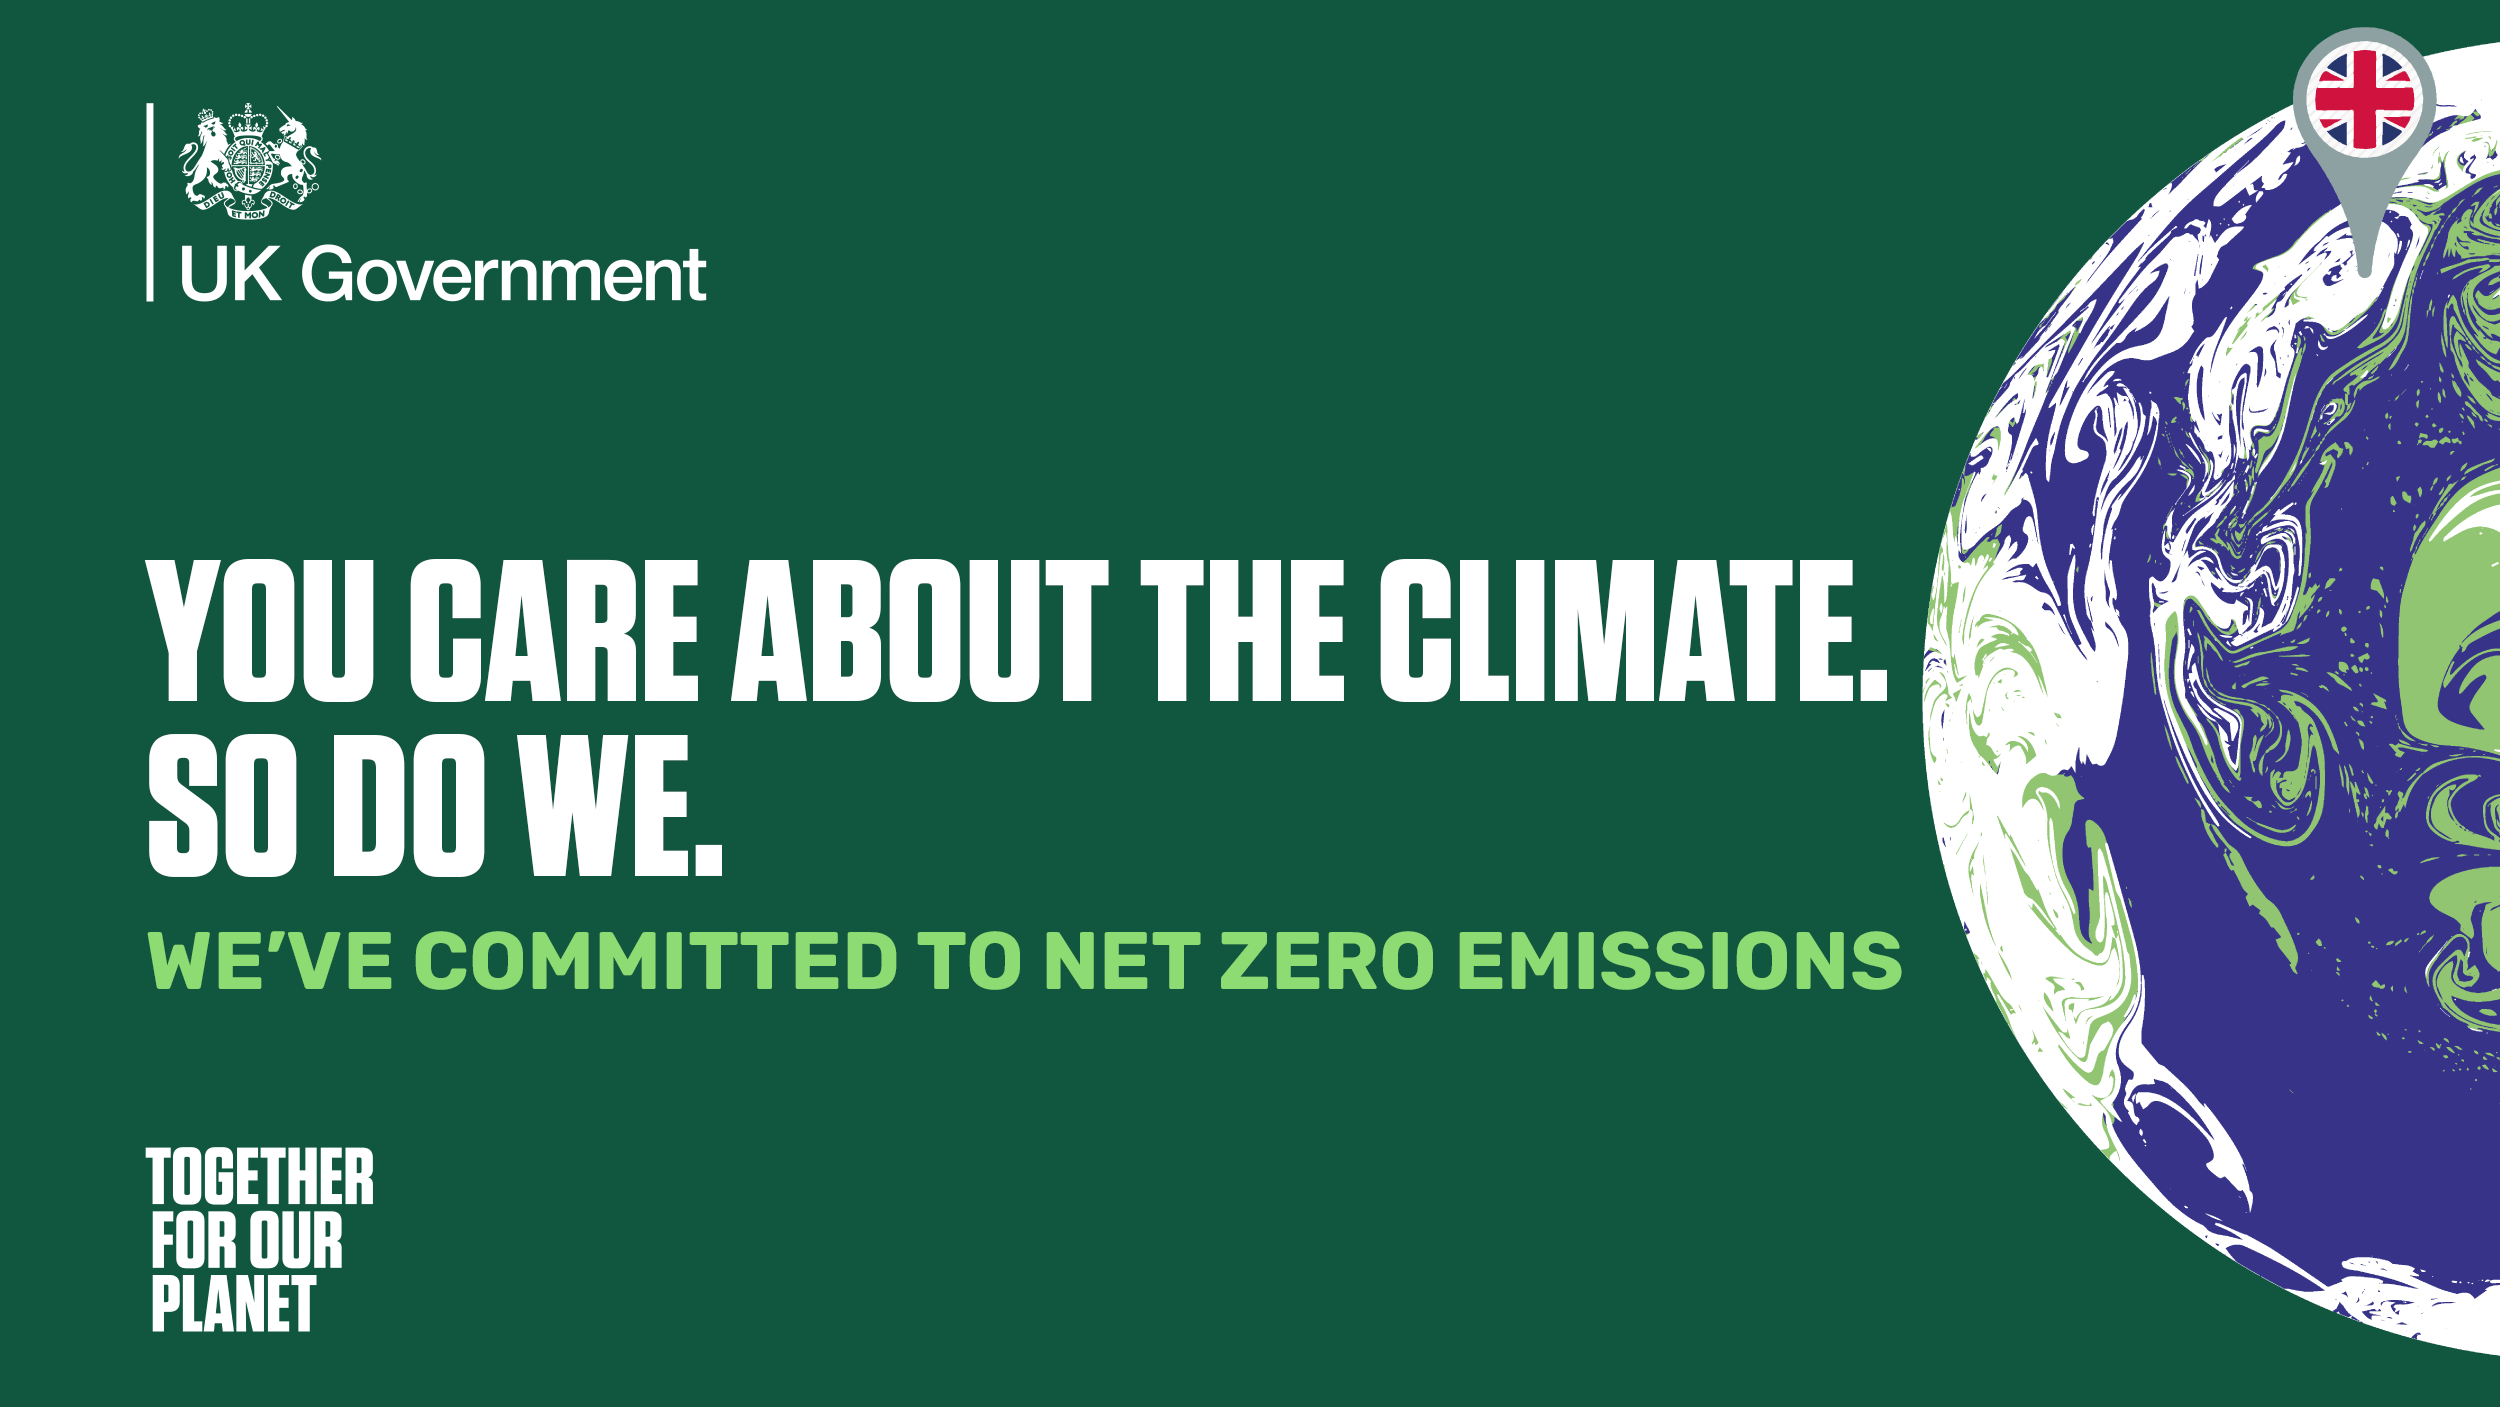 Join the UK SME Climate Hub and commit to net zero carbon emissions